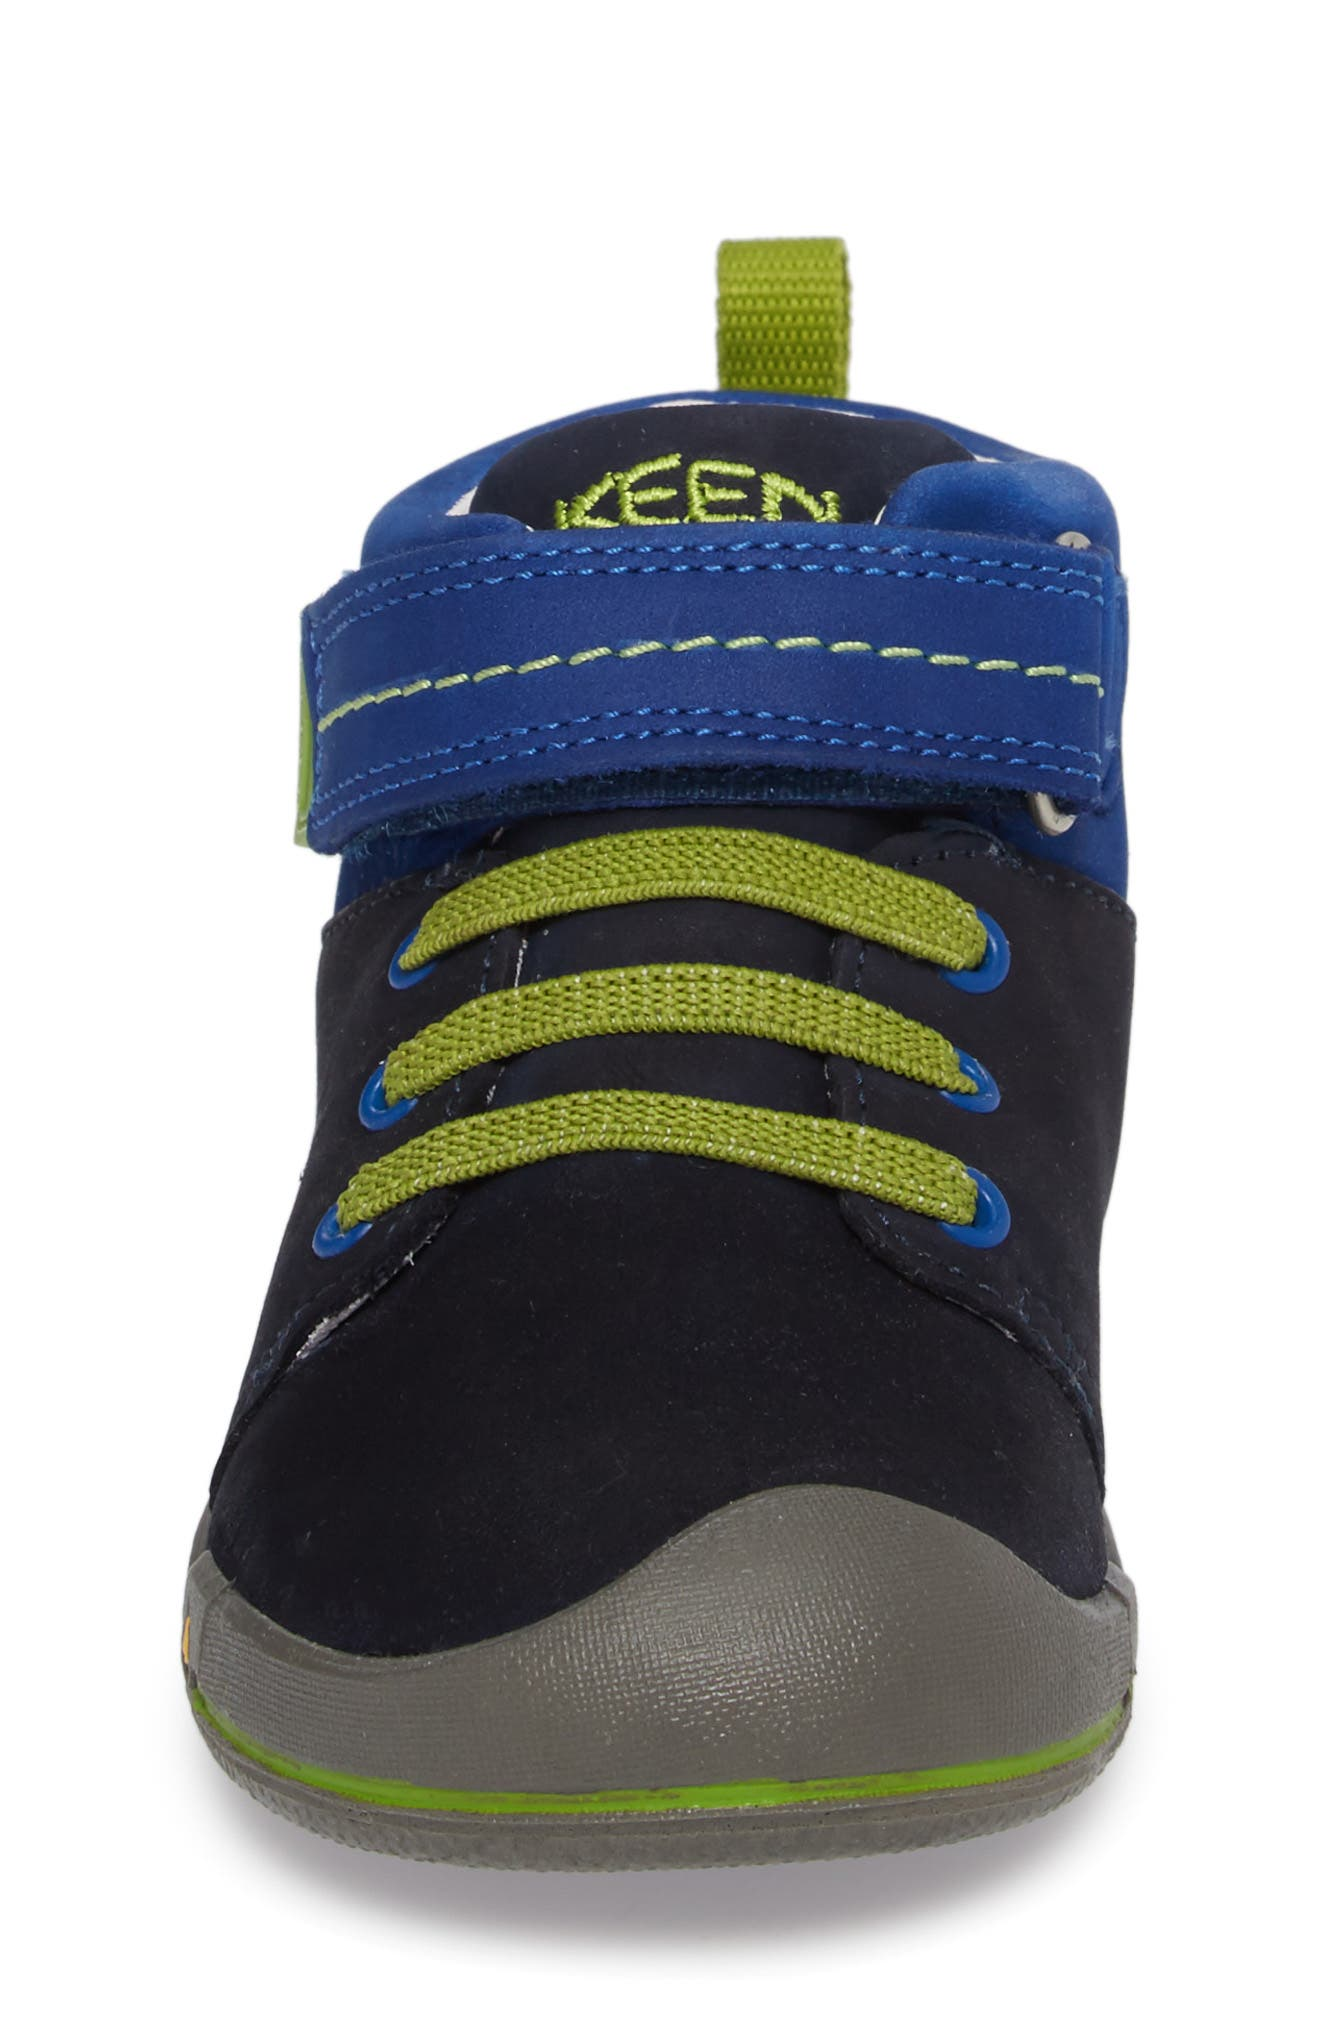 Sprout Mid Sneaker,                             Alternate thumbnail 4, color,                             400